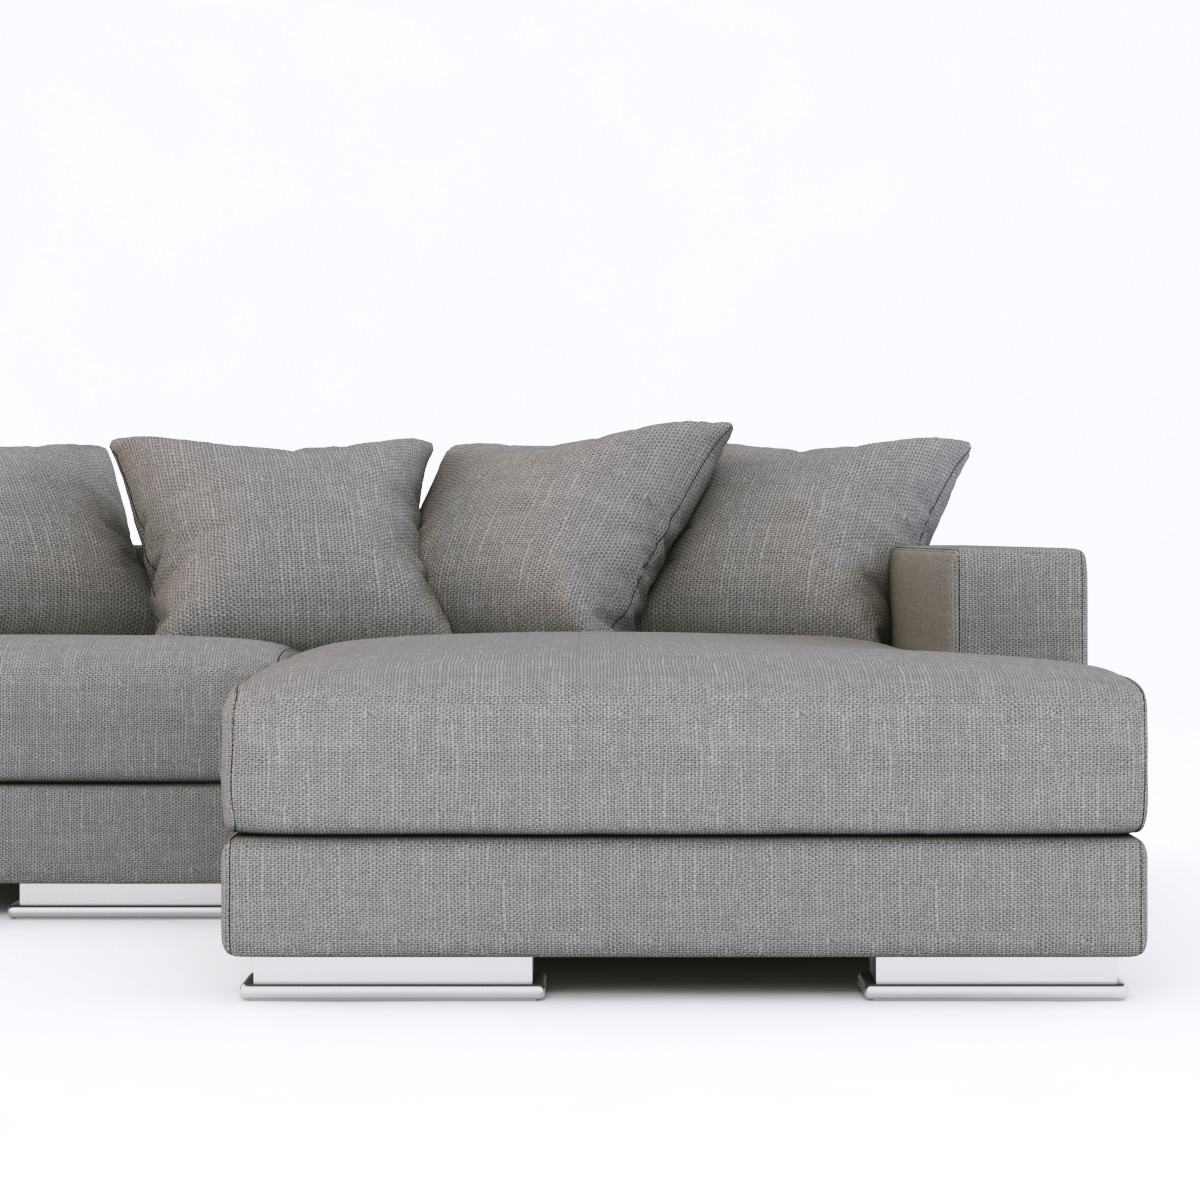 Modern sofa 7 3d models for Sofa 3d model